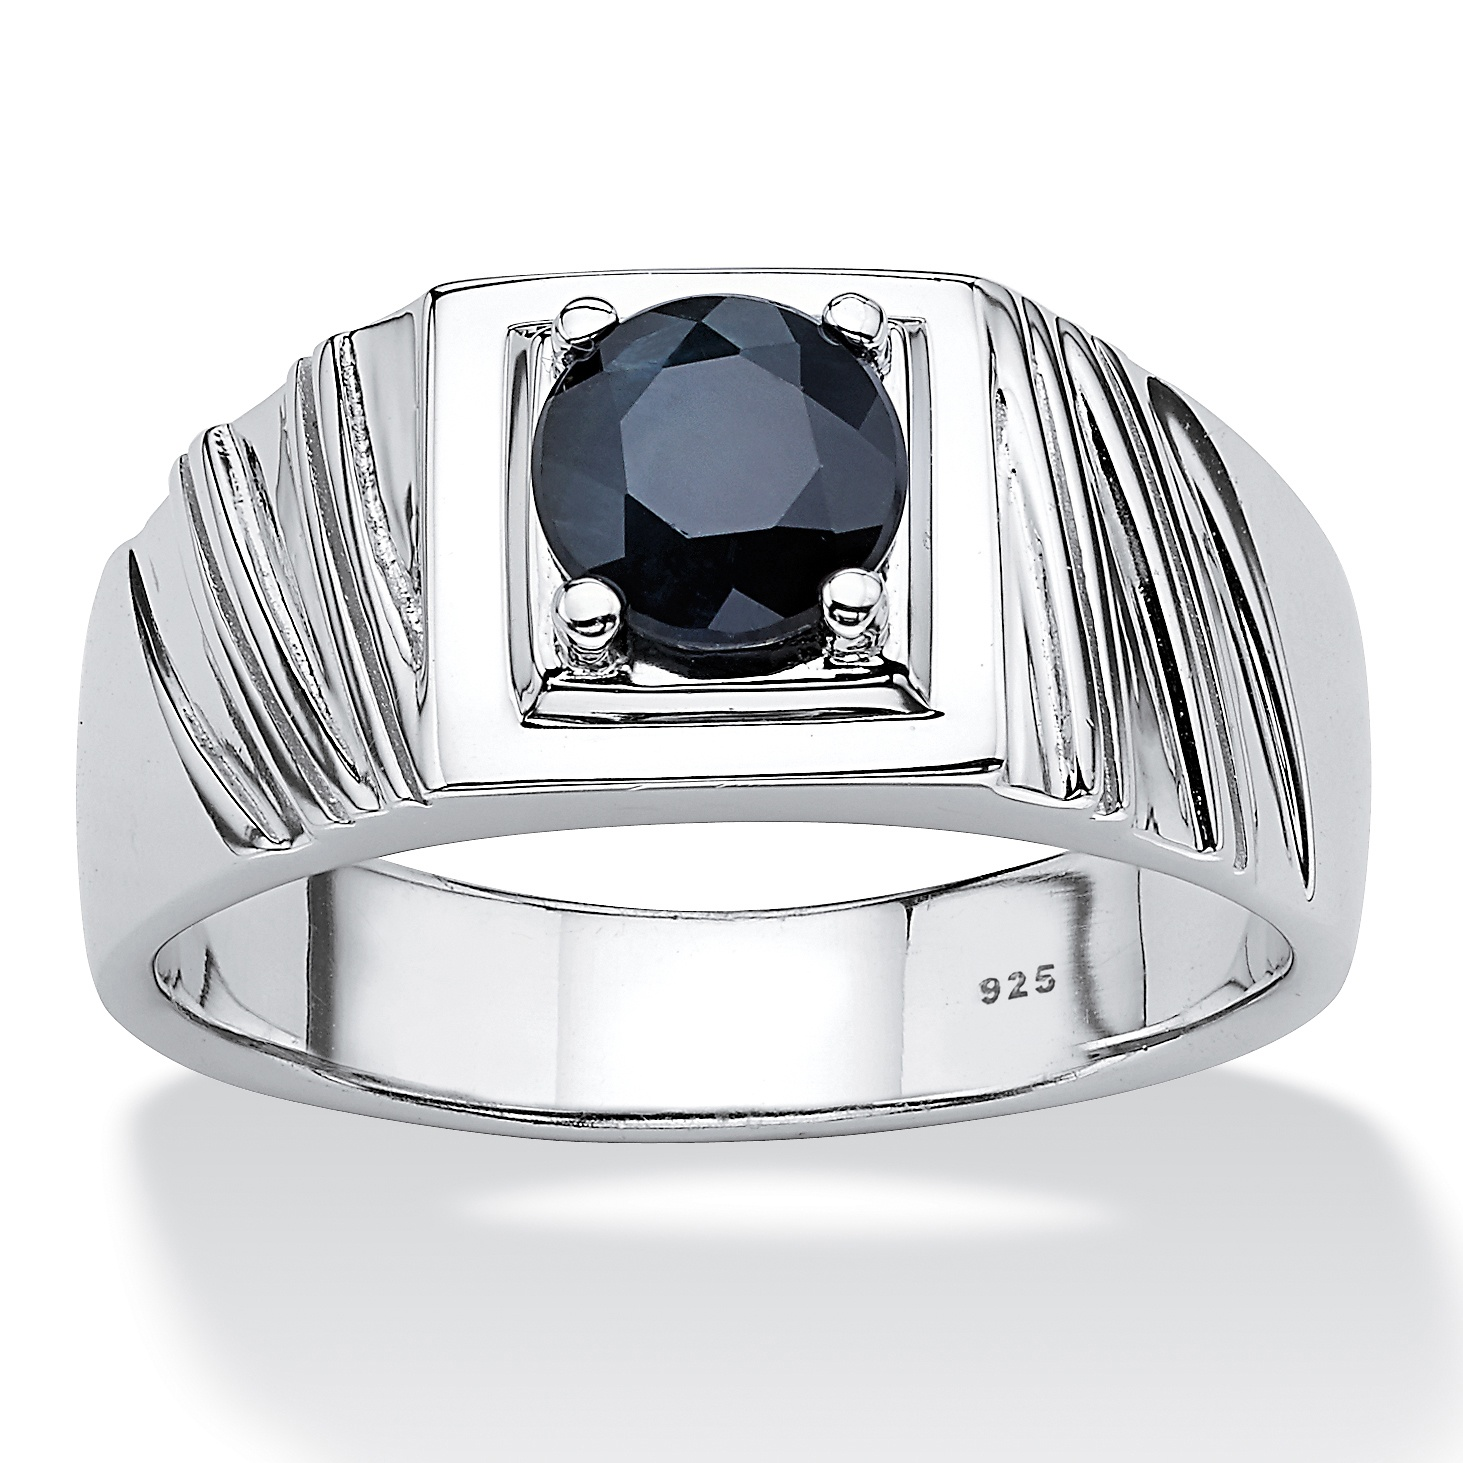 Men S 1 41 Tcw Round Midnight Blue Genuine Shire Sterling Silver Clic Ring At Palmbeach Jewelry